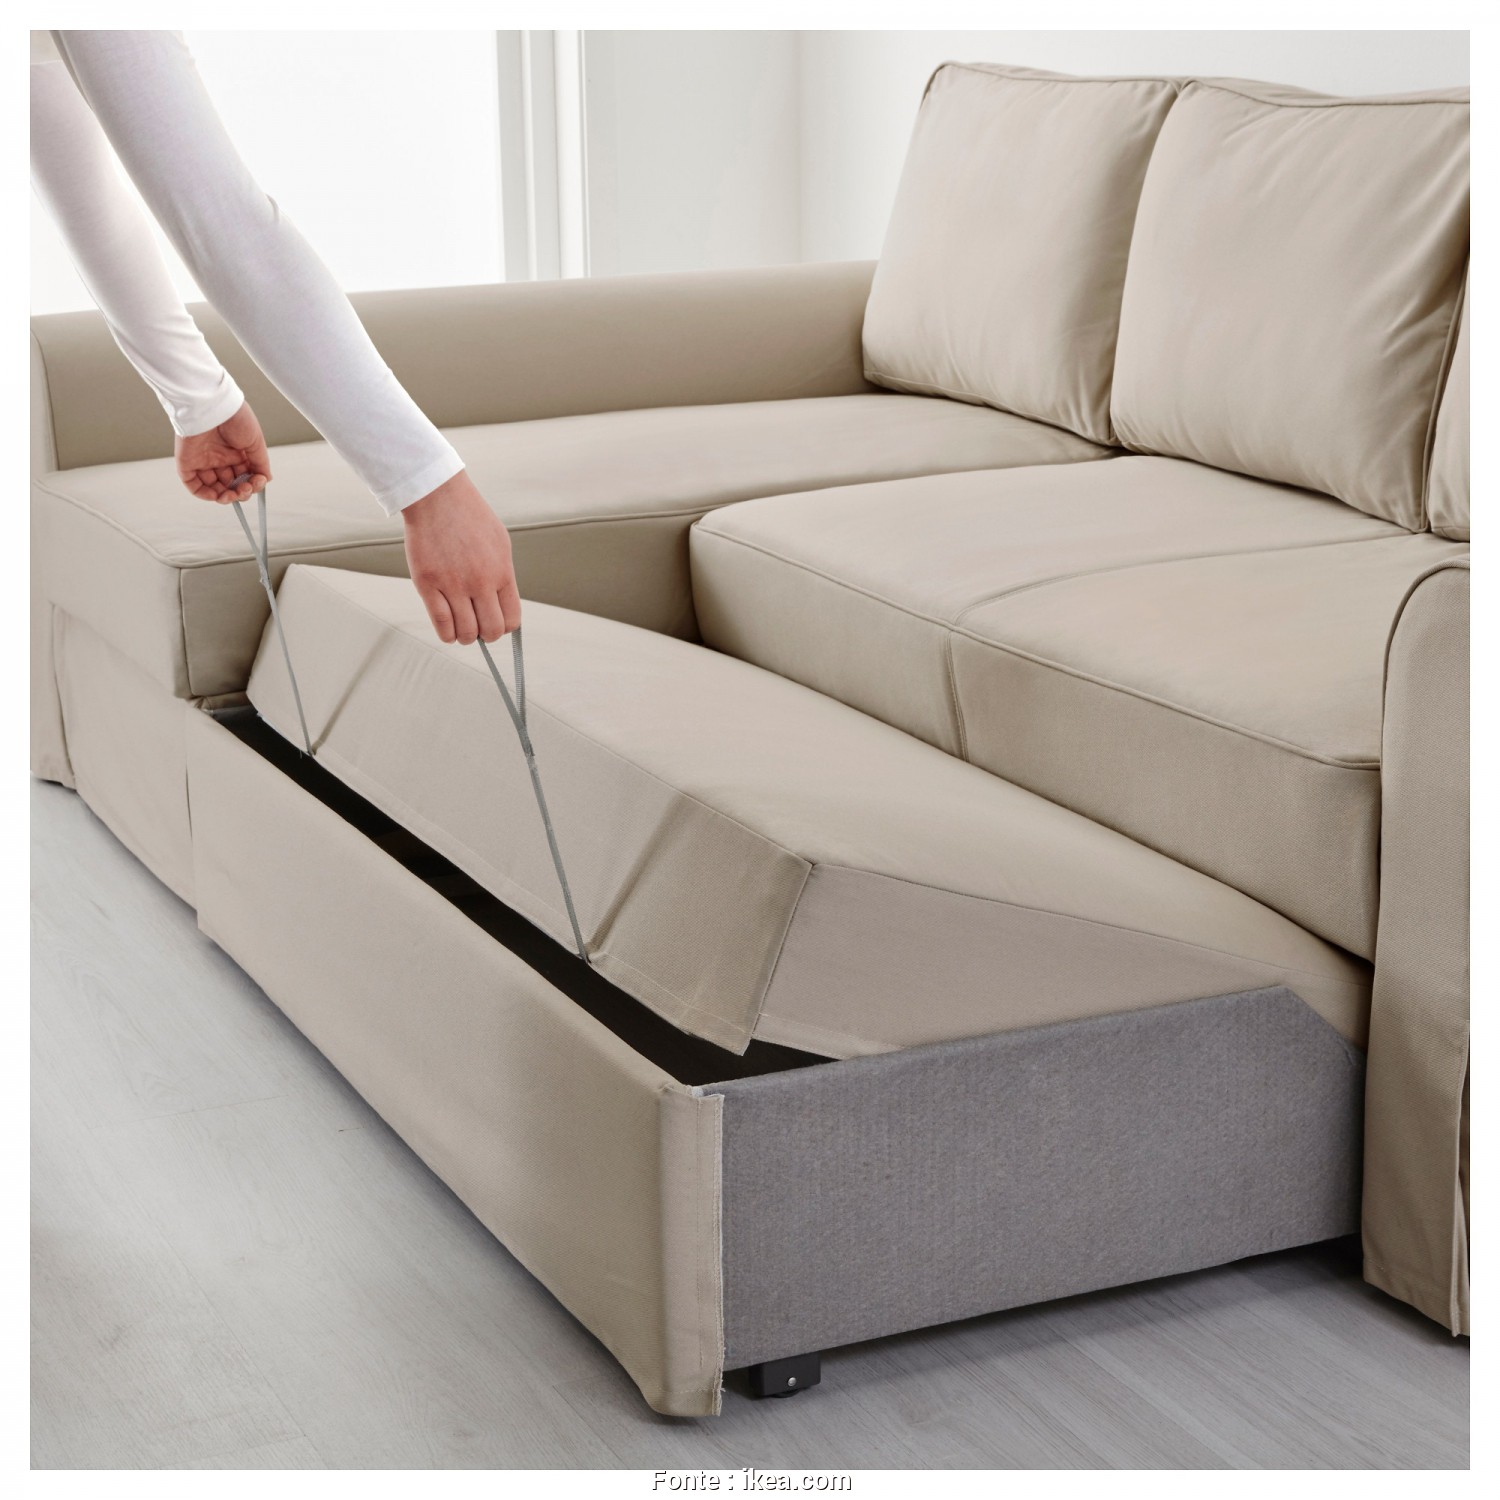 Ikea Backabro Sofa, Assembly Instructions, Grande IKEA BACKABRO Sofa, With Chaise Longue Readily Converts Into A Bed